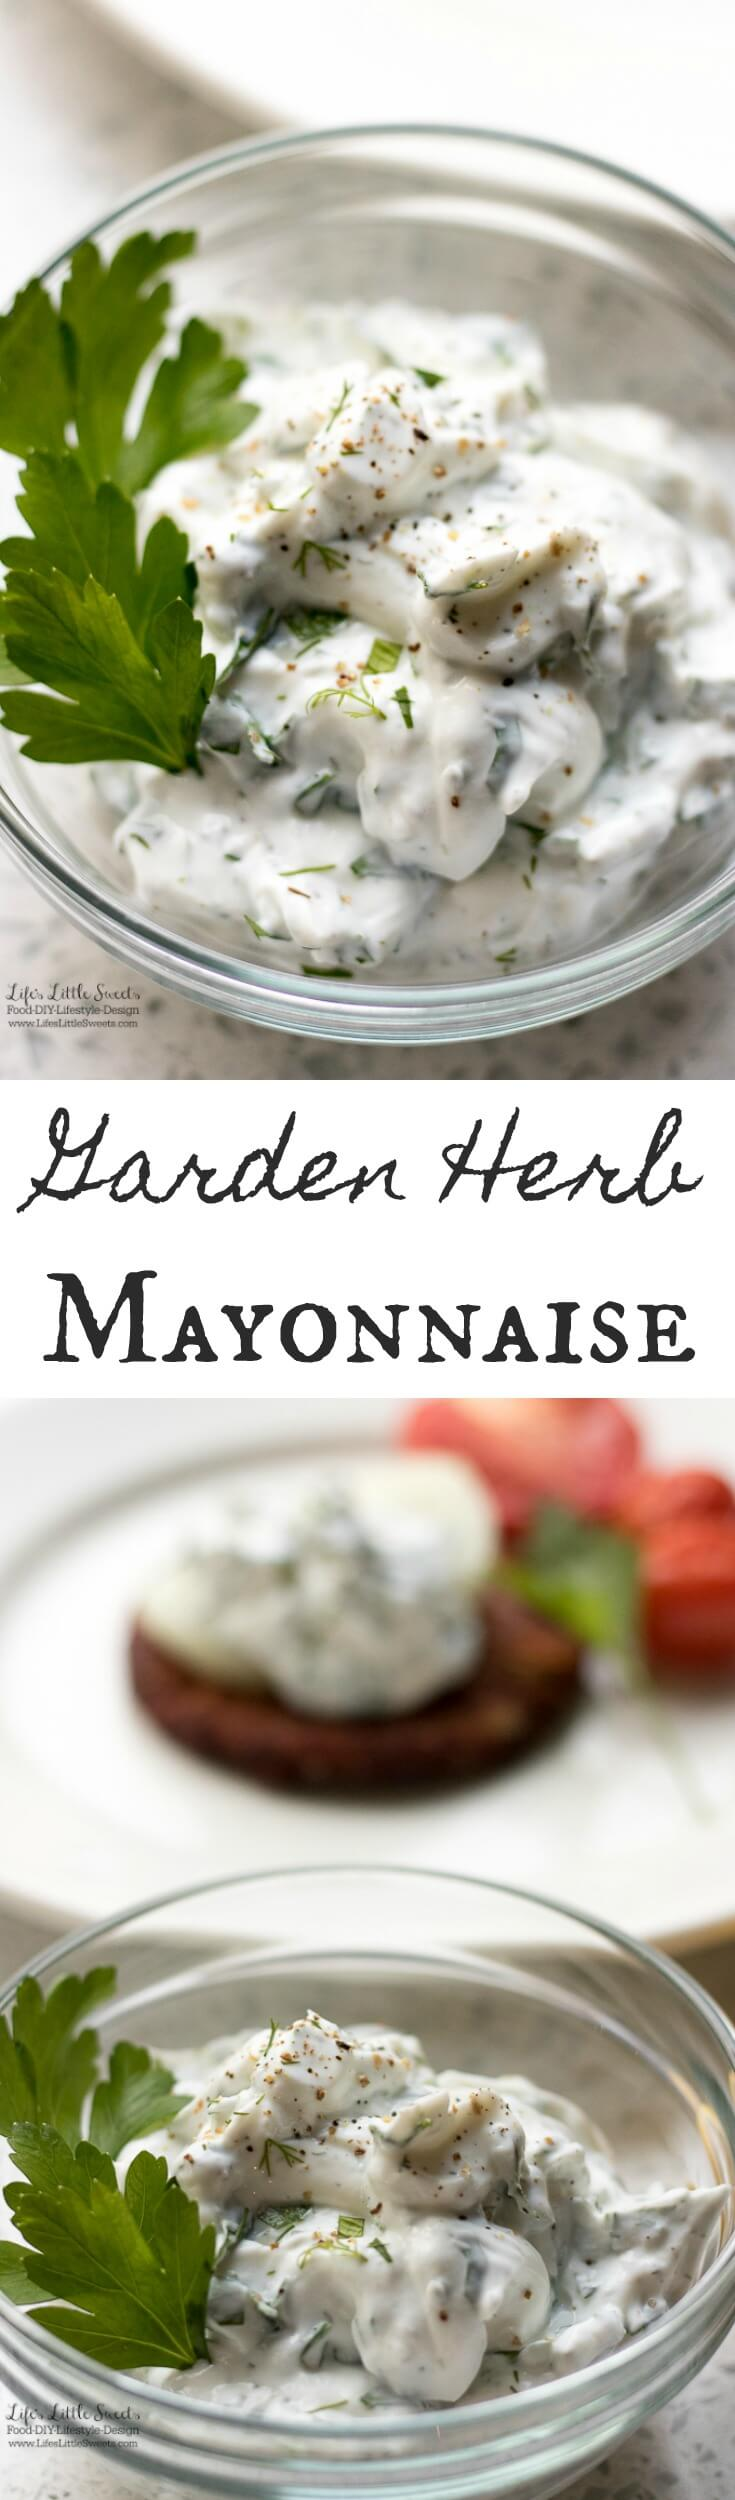 Garden Herb Mayonnaise has garden-fresh flavors and is a great addition to burgers, veggie burgers and fish. It only takes minutes to prepare this tasty condiment.